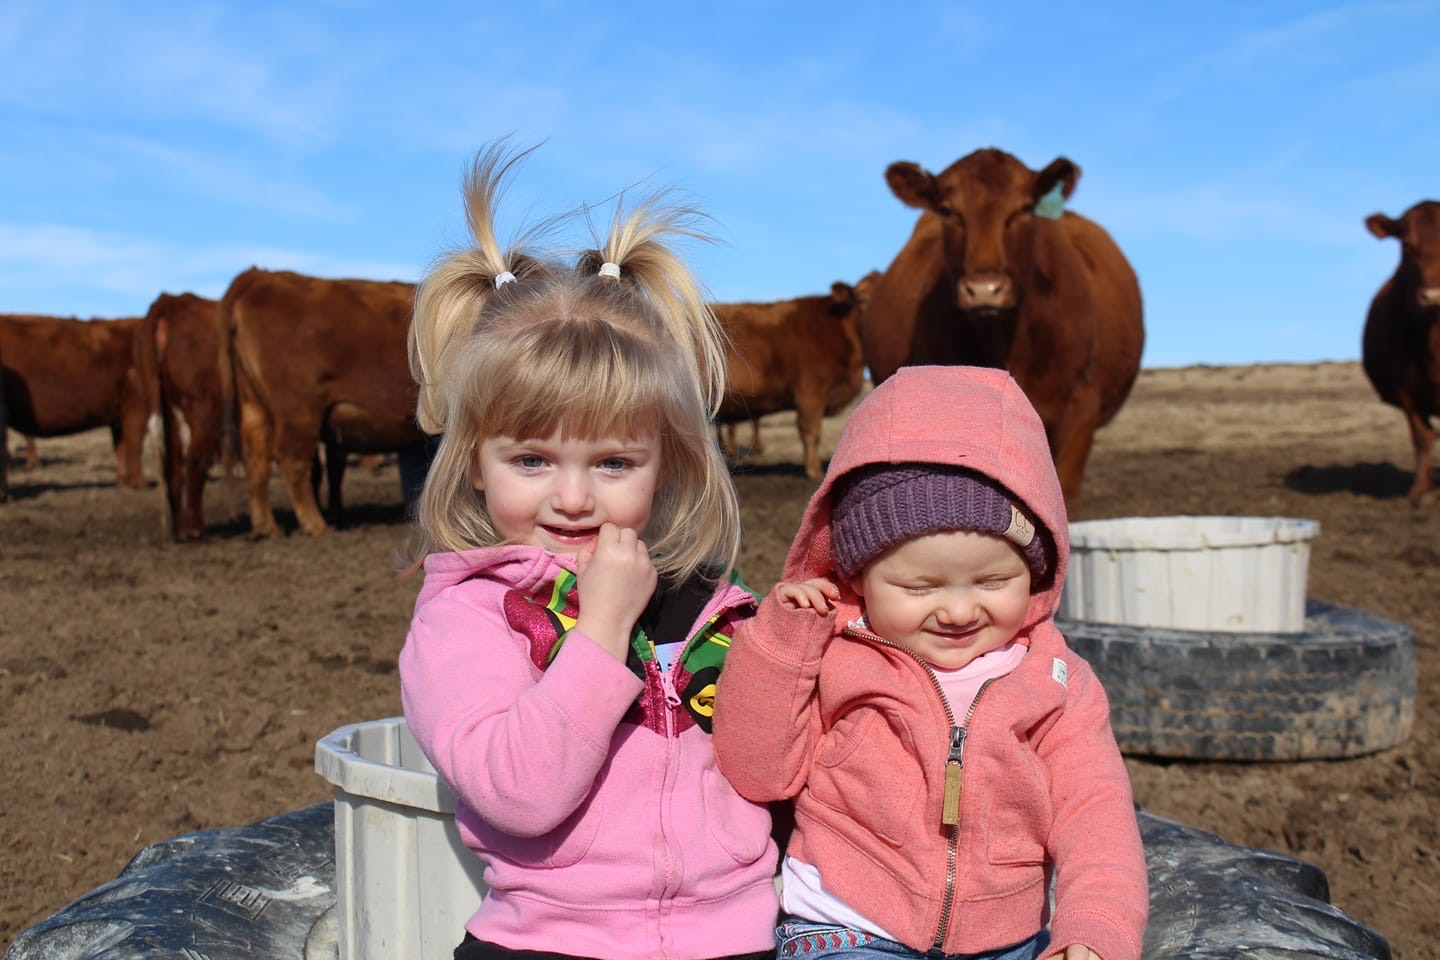 Raelynn and Emeri Hovorka hanging out with some of their best buds. Daughters of Keith and Debbie Hovorka.